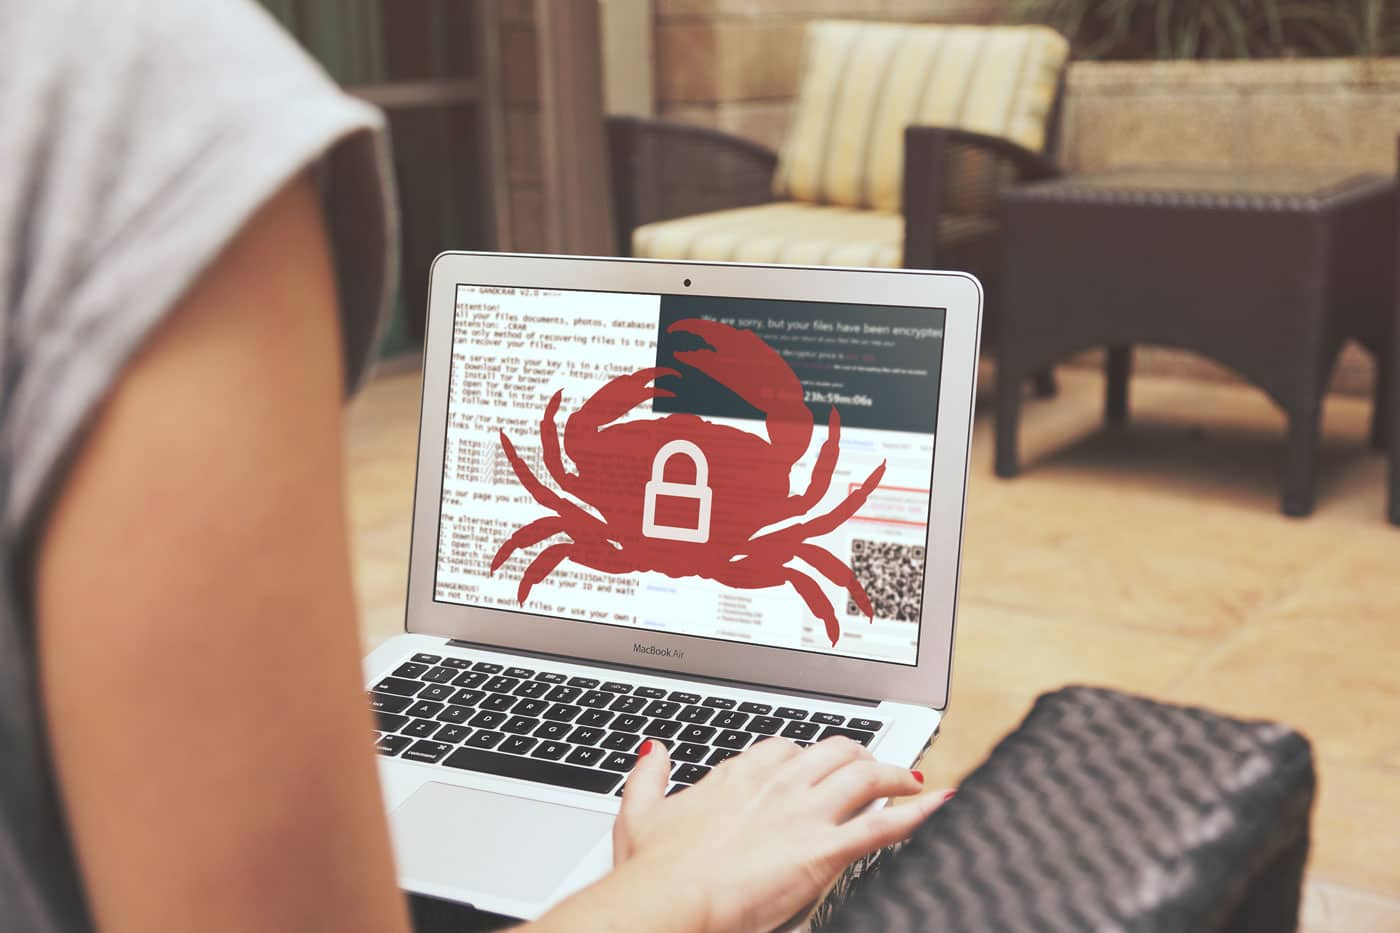 Gandcrab ransomware? Don't lose access to your files!